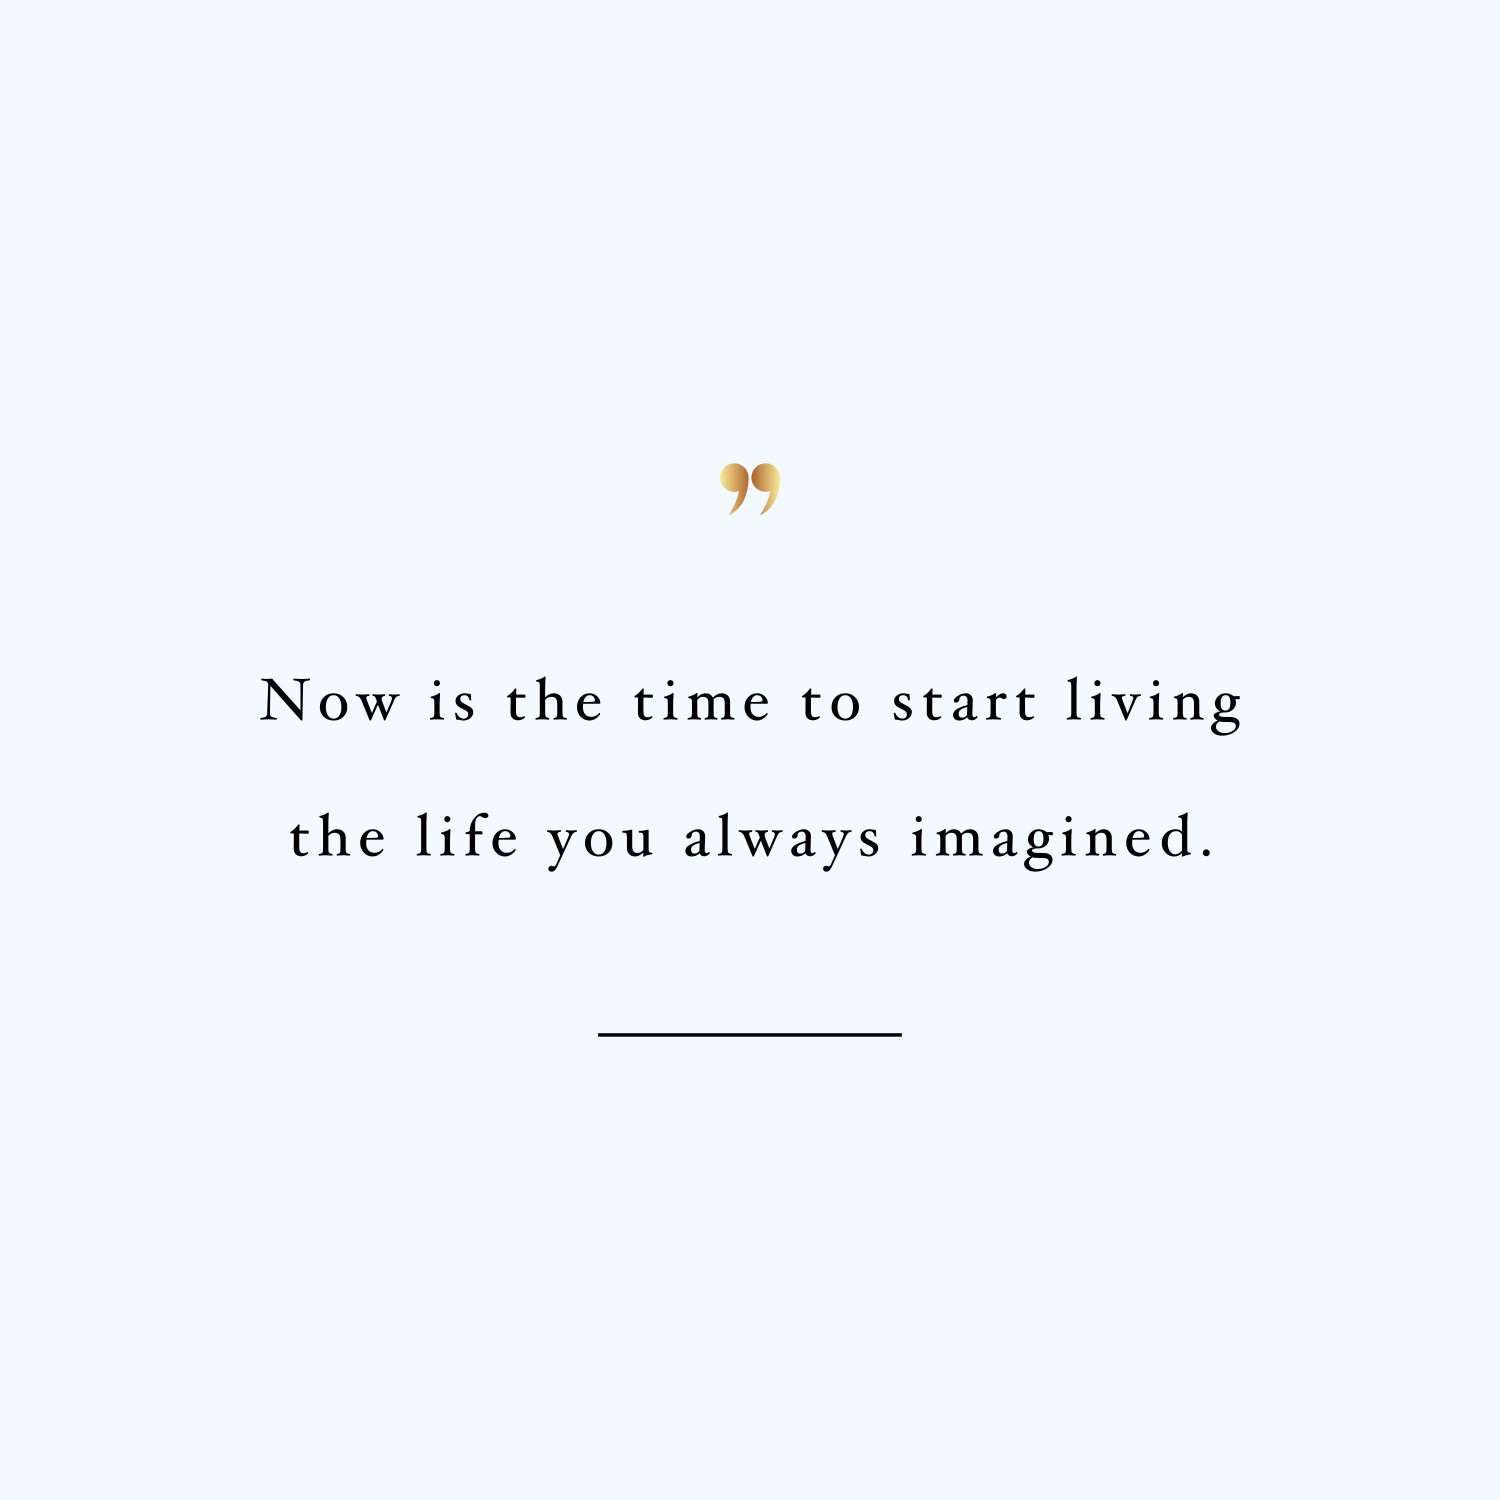 Now is the time! Browse our collection of exercise and fitness motivational quotes and get instant weight loss and training inspiration. Transform positive thoughts into positive actions and get fit, healthy and happy! https://www.spotebi.com/workout-motivation/now-is-the-time/